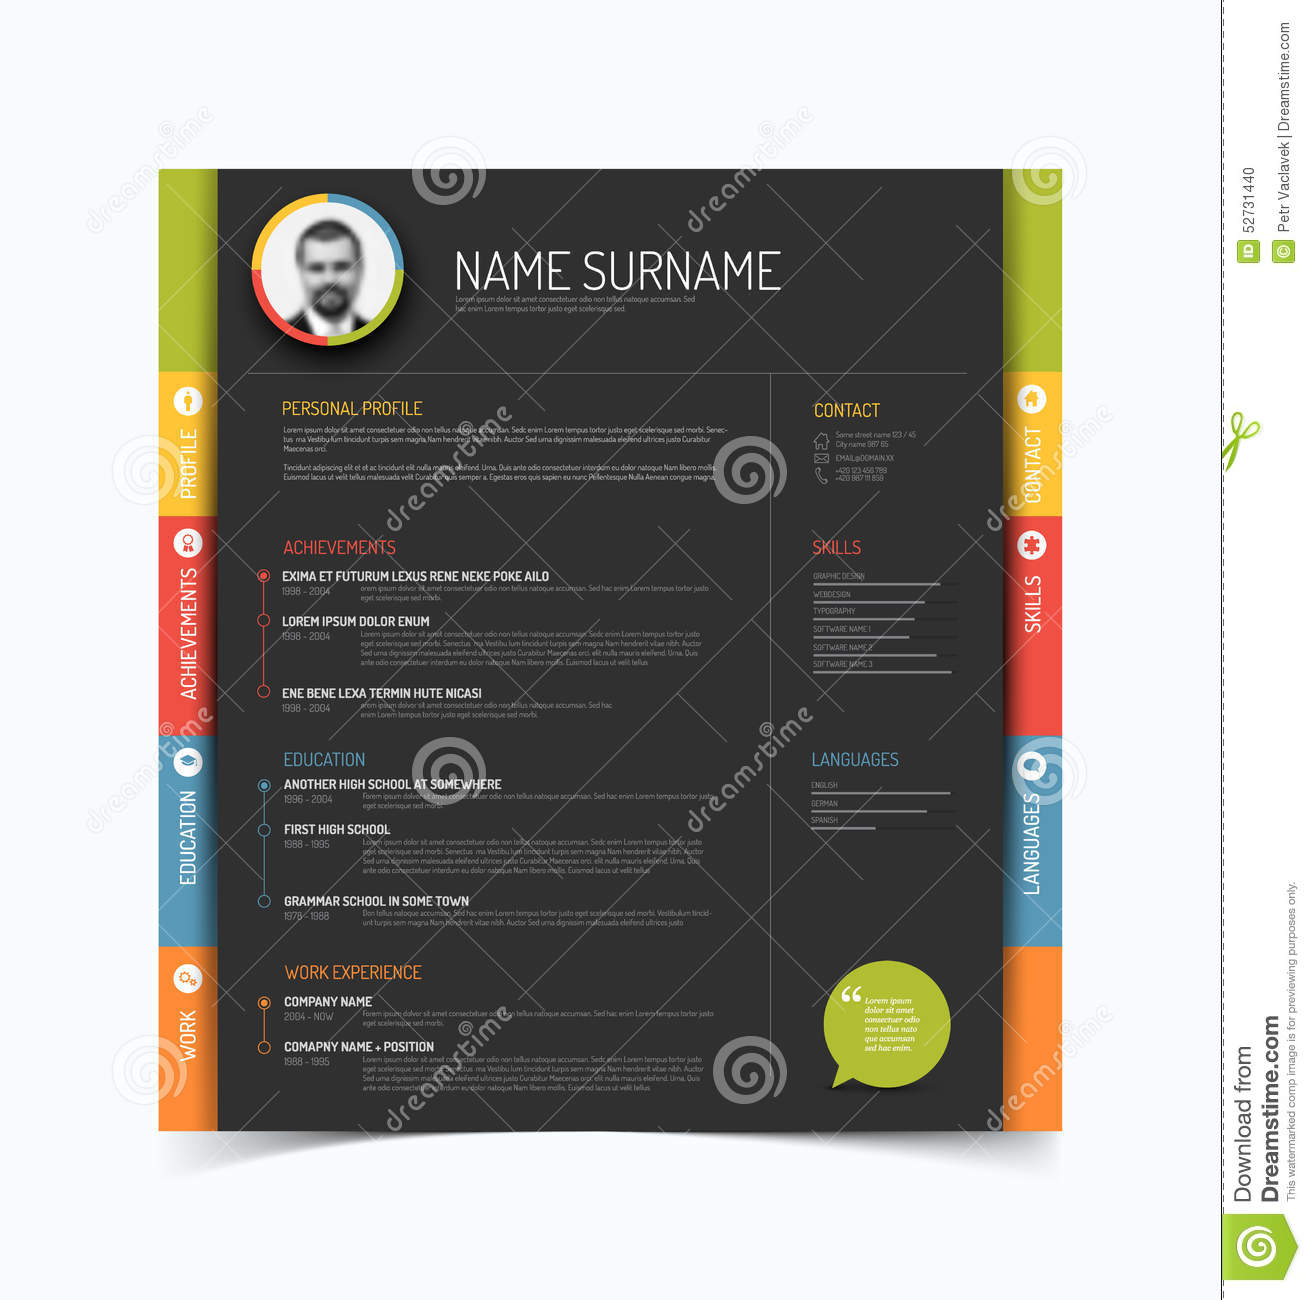 Cv / Resume Template  Resume Background Image